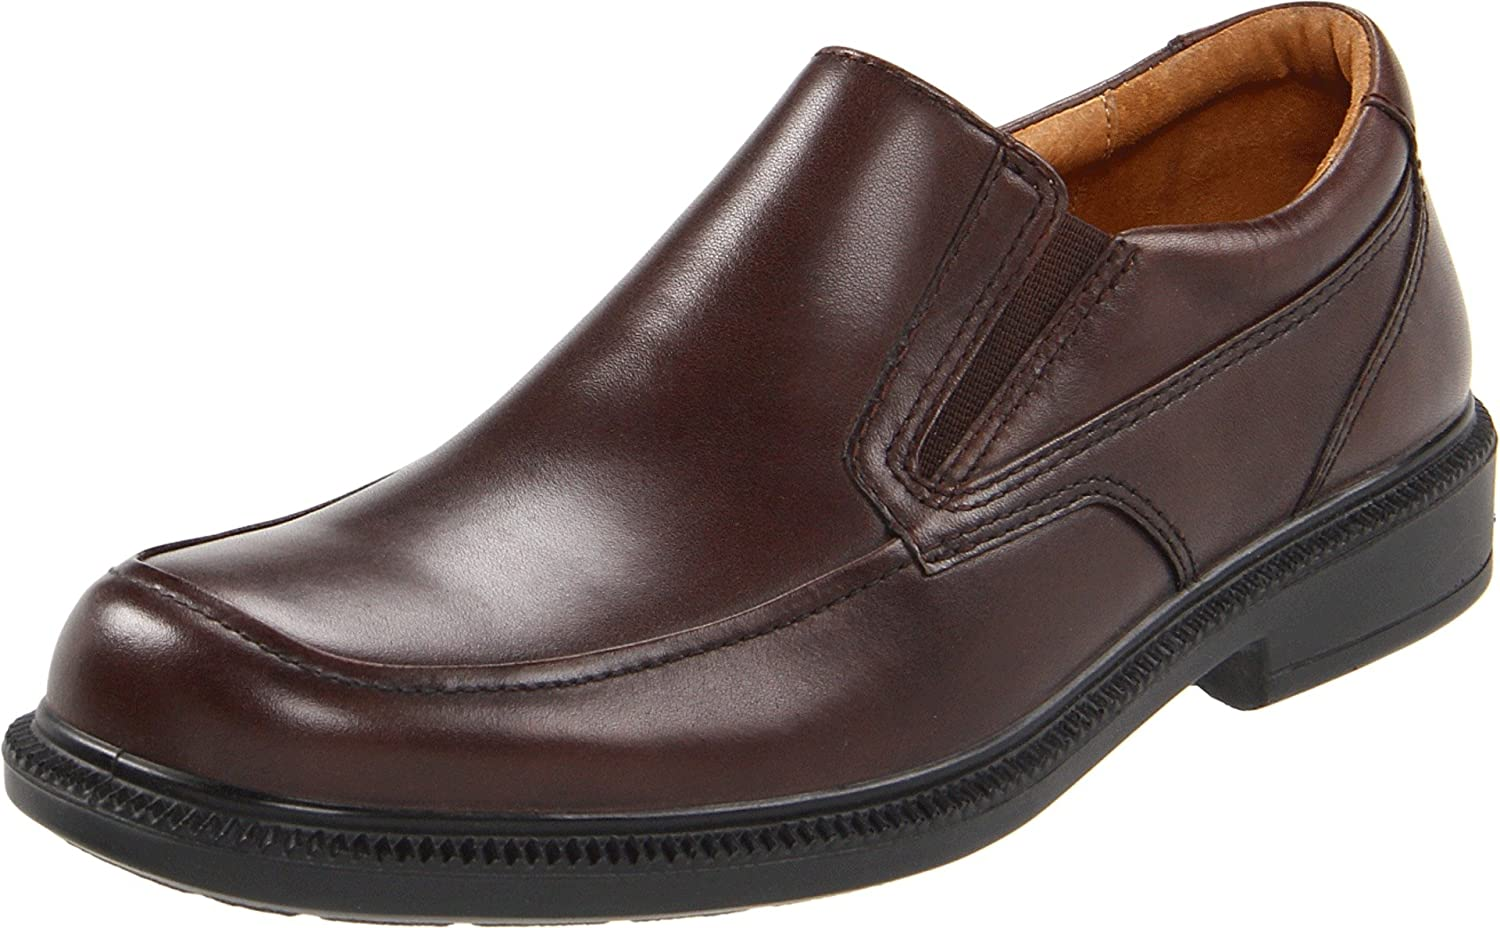 Hush Puppies Mens Leverage Slip-On Loafer